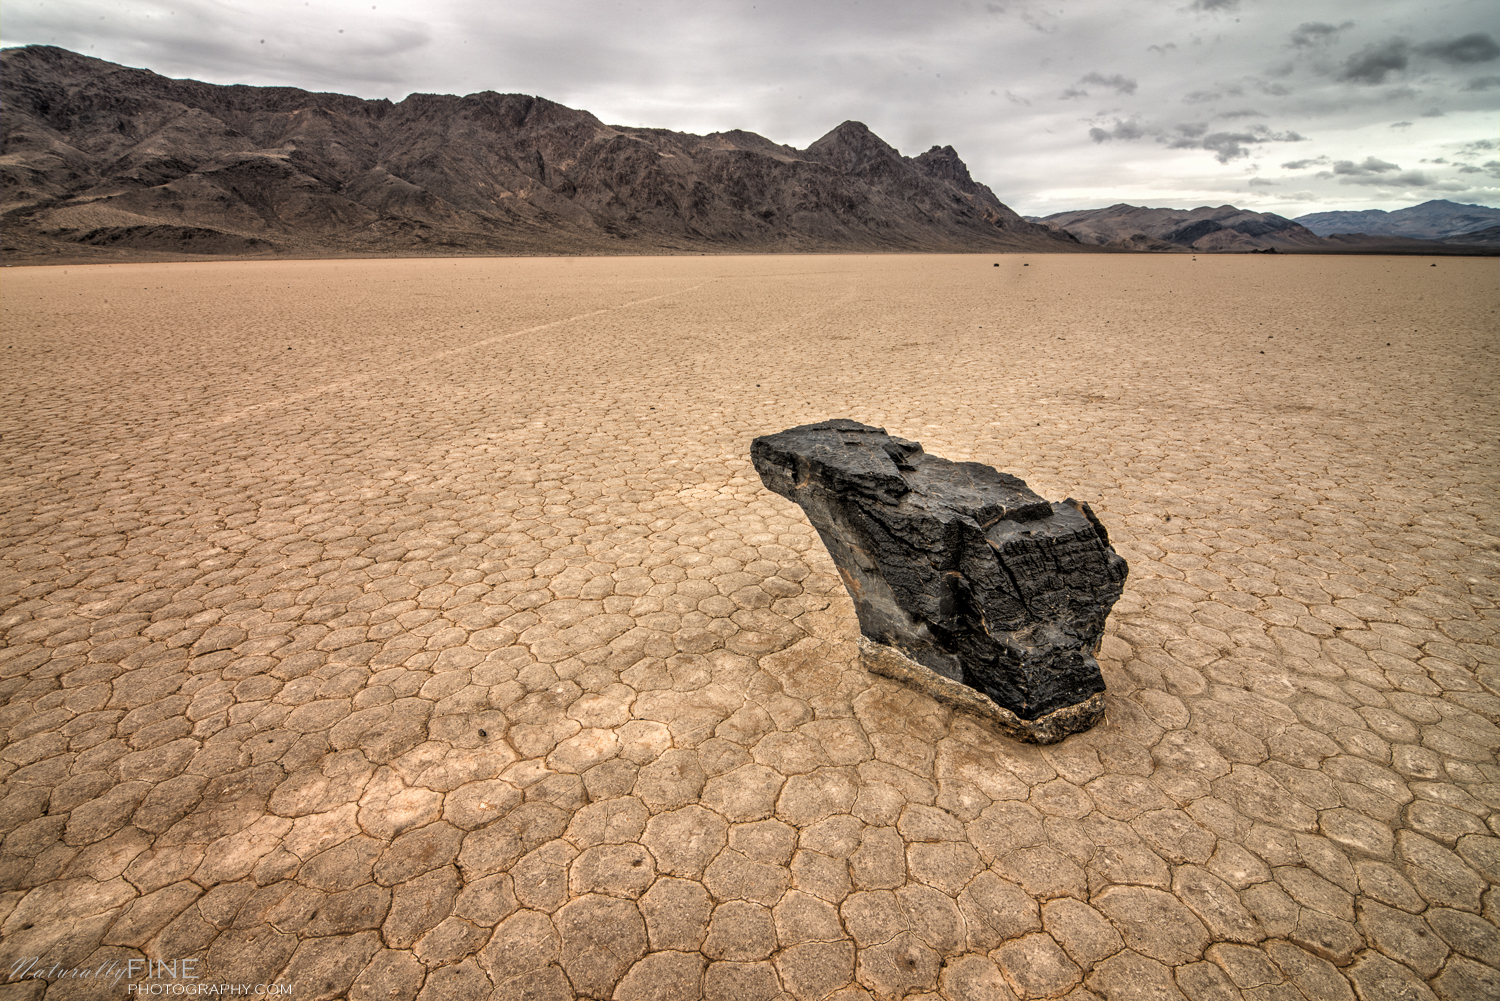 A Frog -This rock traveled one hundred yards or so, propelled by natural forces, ending up in the middle of Racetrack Playa in Death Valley.